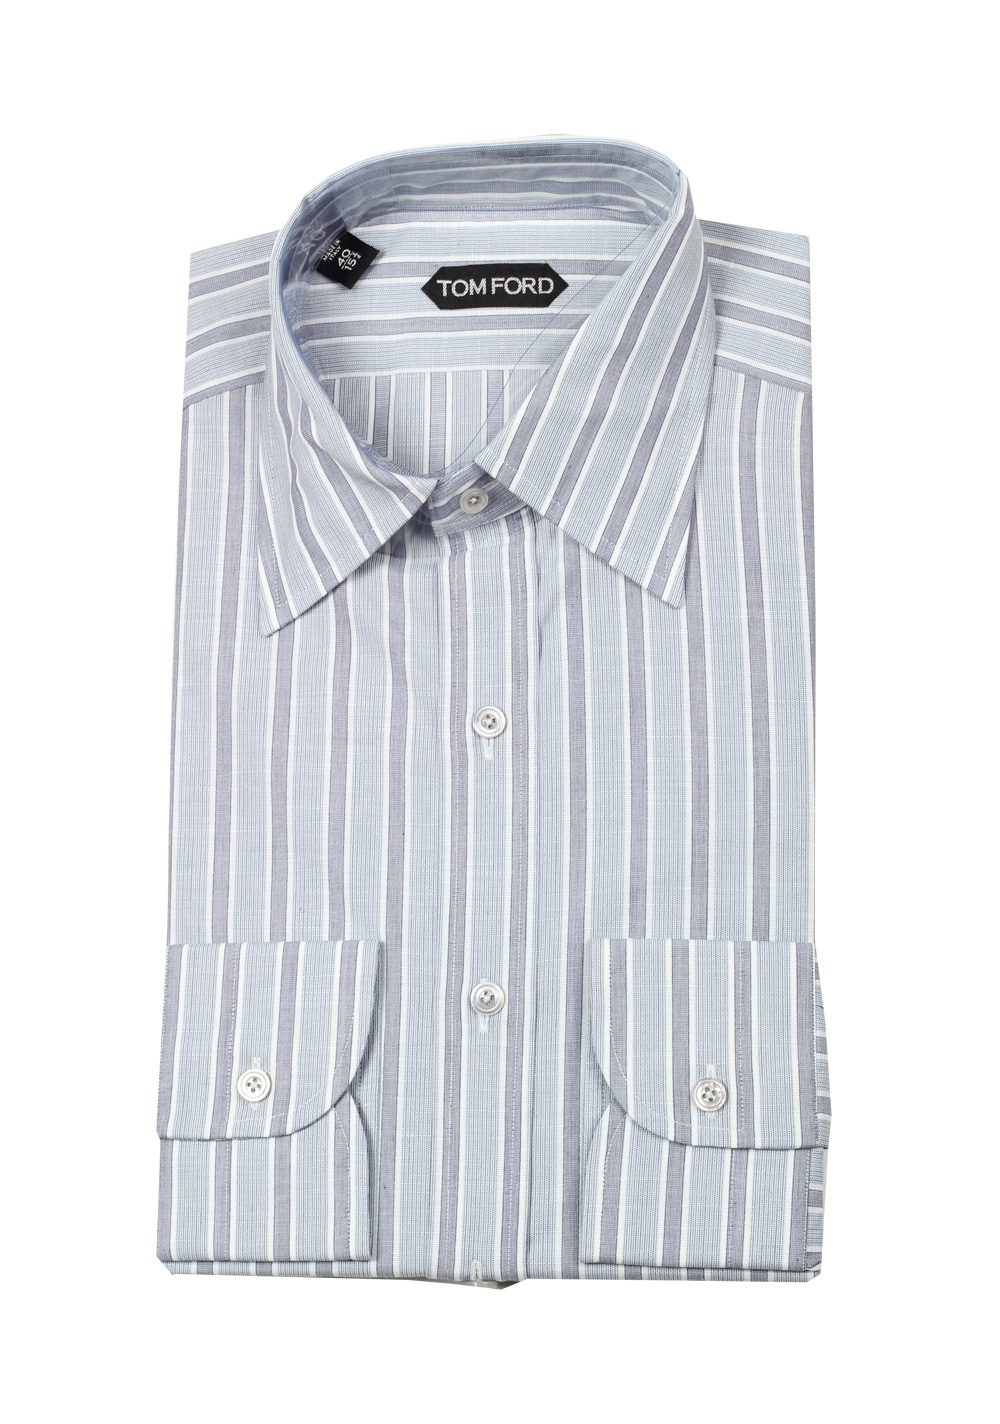 TOM FORD Striped Gray High Collar Dress Shirt Size 40 / 15,75 U.S. | Costume Limité